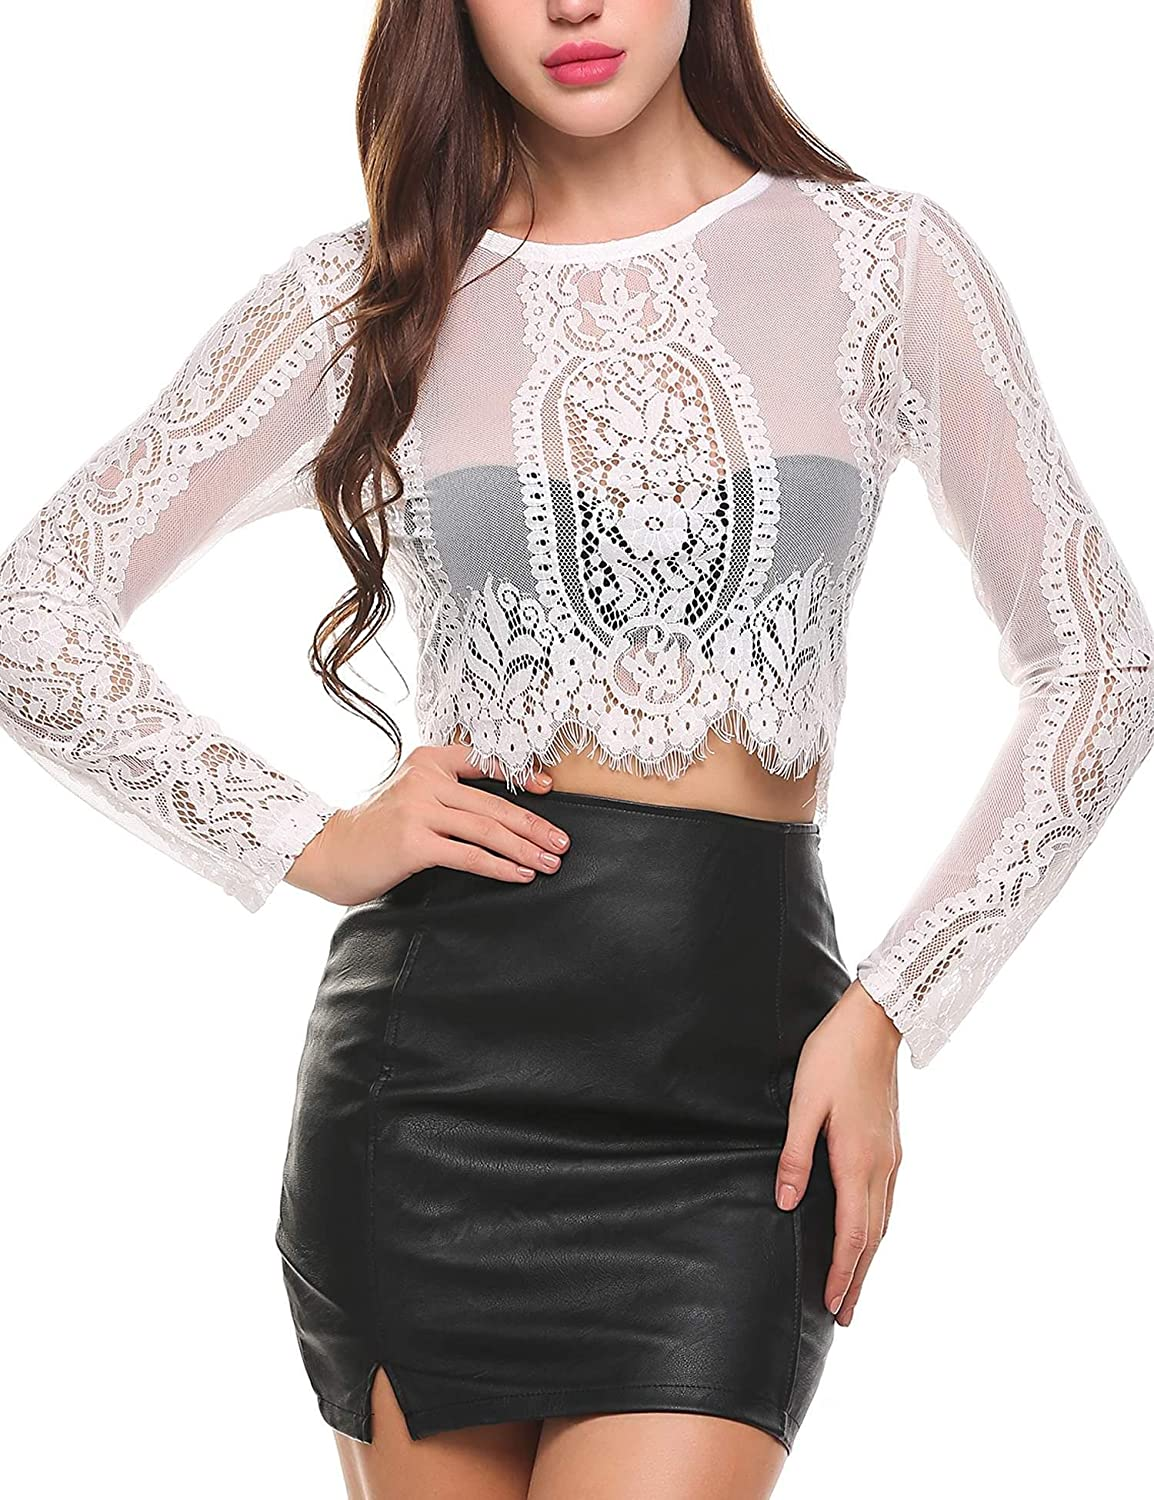 9780f003970921 SoTeer Women's Fashion Slim Fit Lace Long Sleeve/Short Sleeve Sexy Sheer  Blouse Mesh Lace Crop Top Shirt (S-XXL) at Amazon Women's Clothing store: